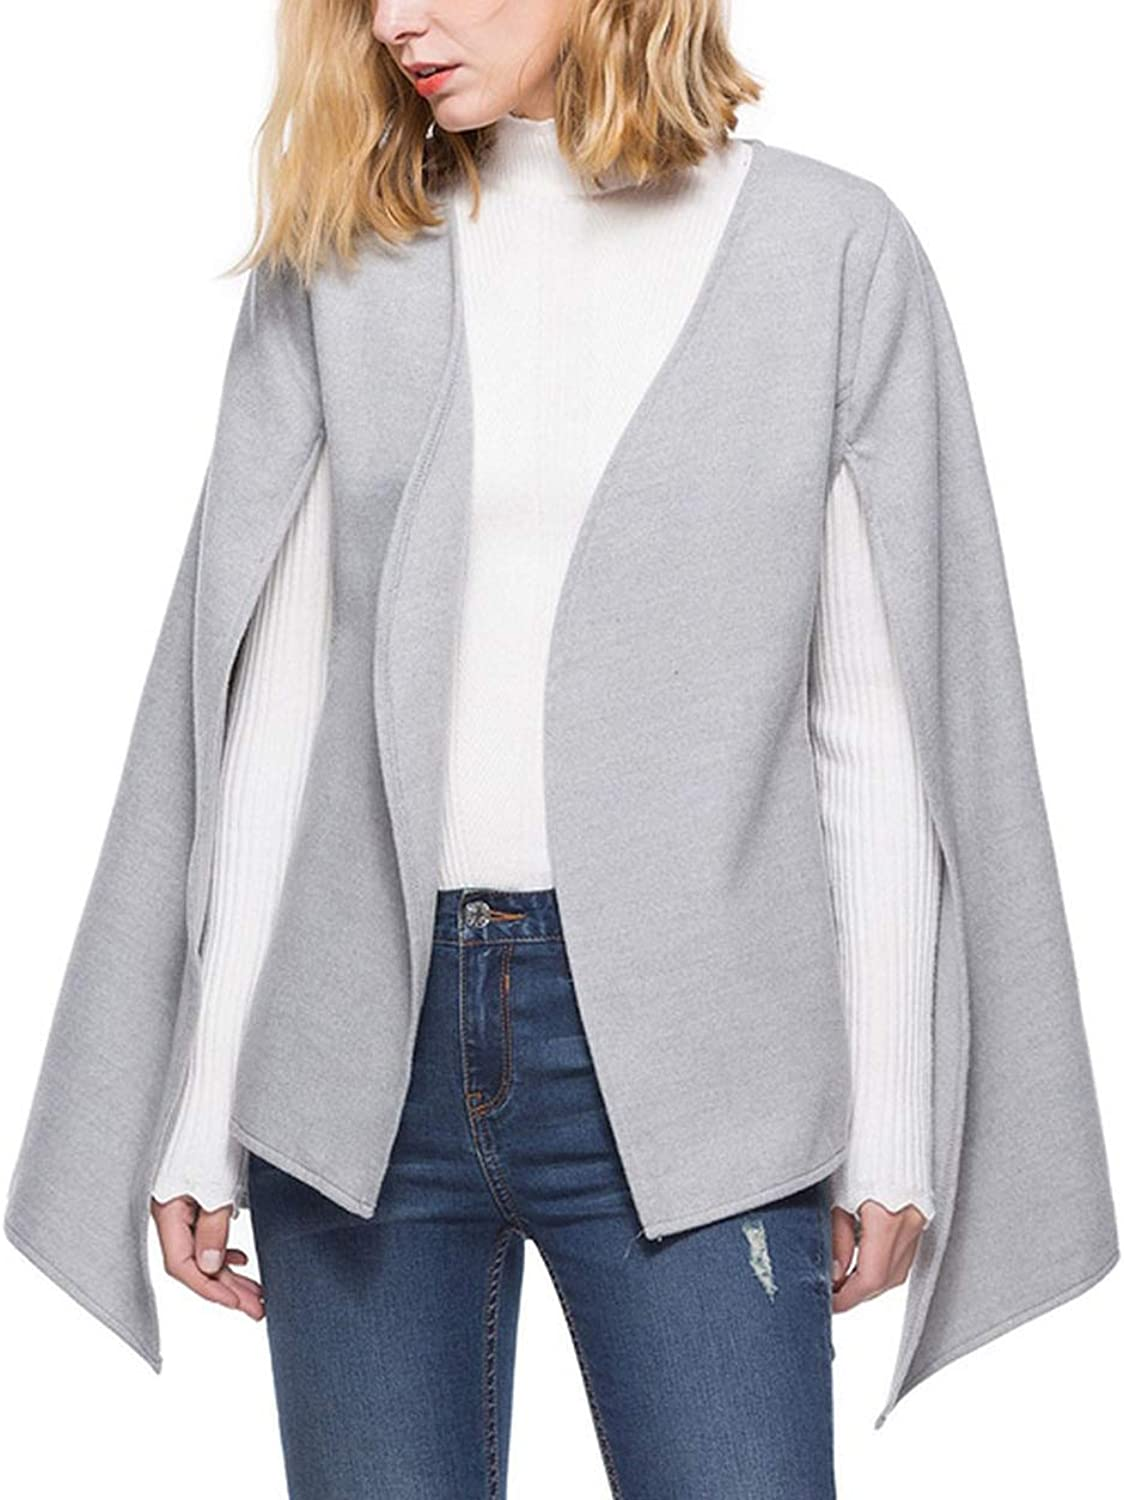 Elegant V Neck Cape Coat Spring Autumn Ladies Open Front Tie Woolen Outerwear